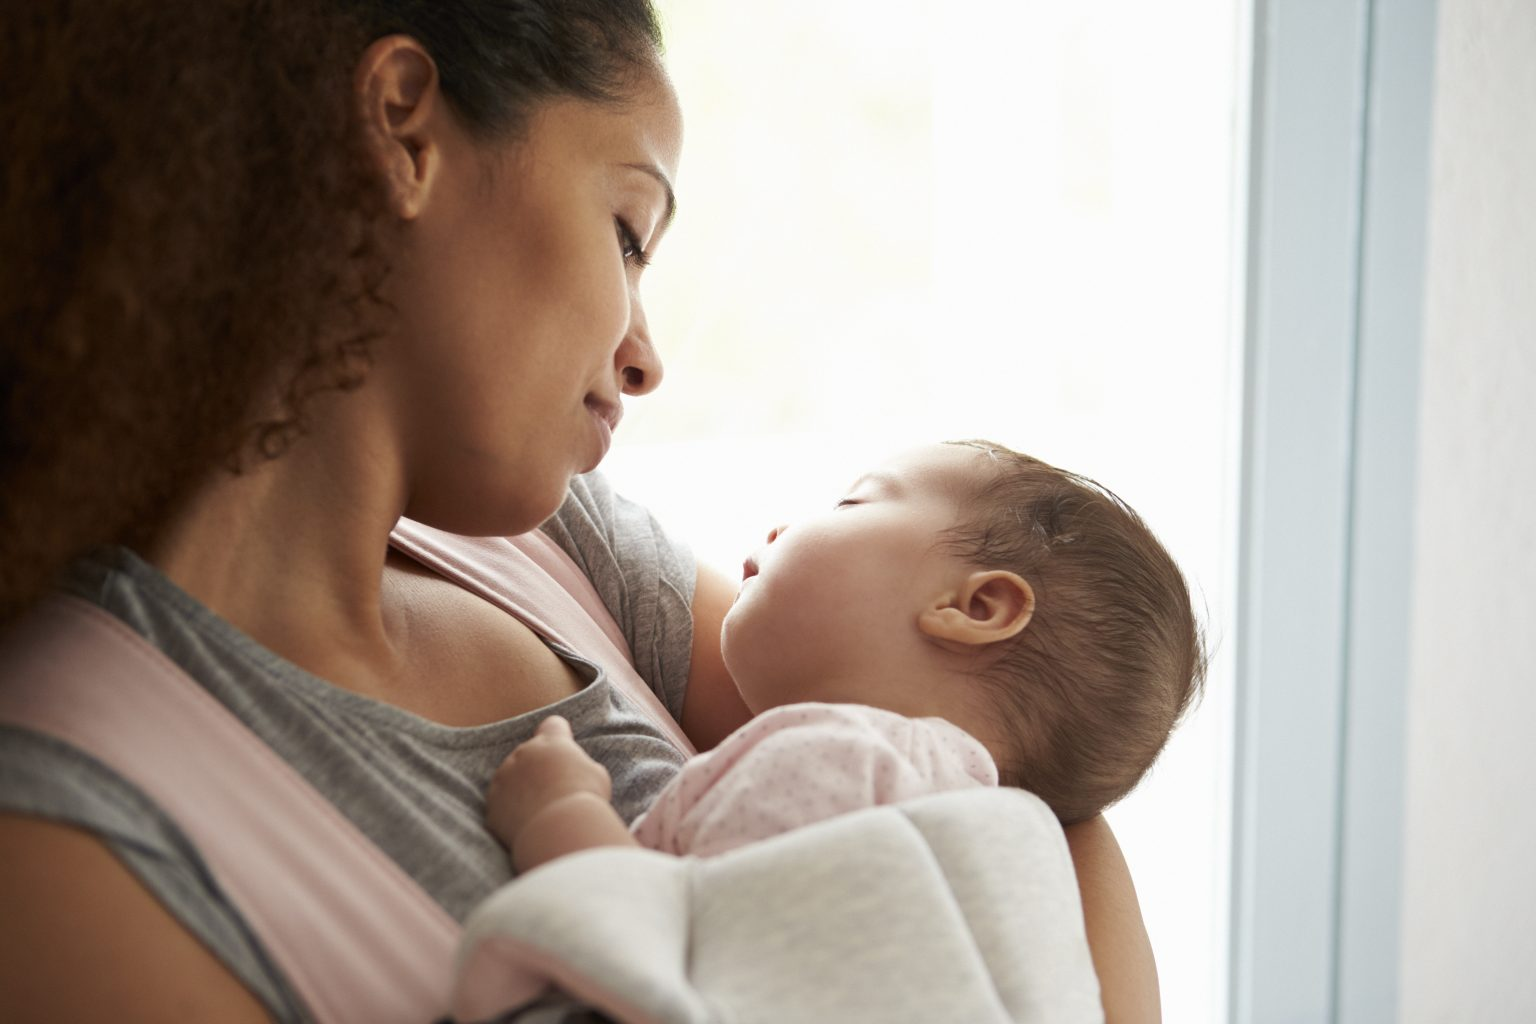 Black mother looking down at infant in her arms with smile